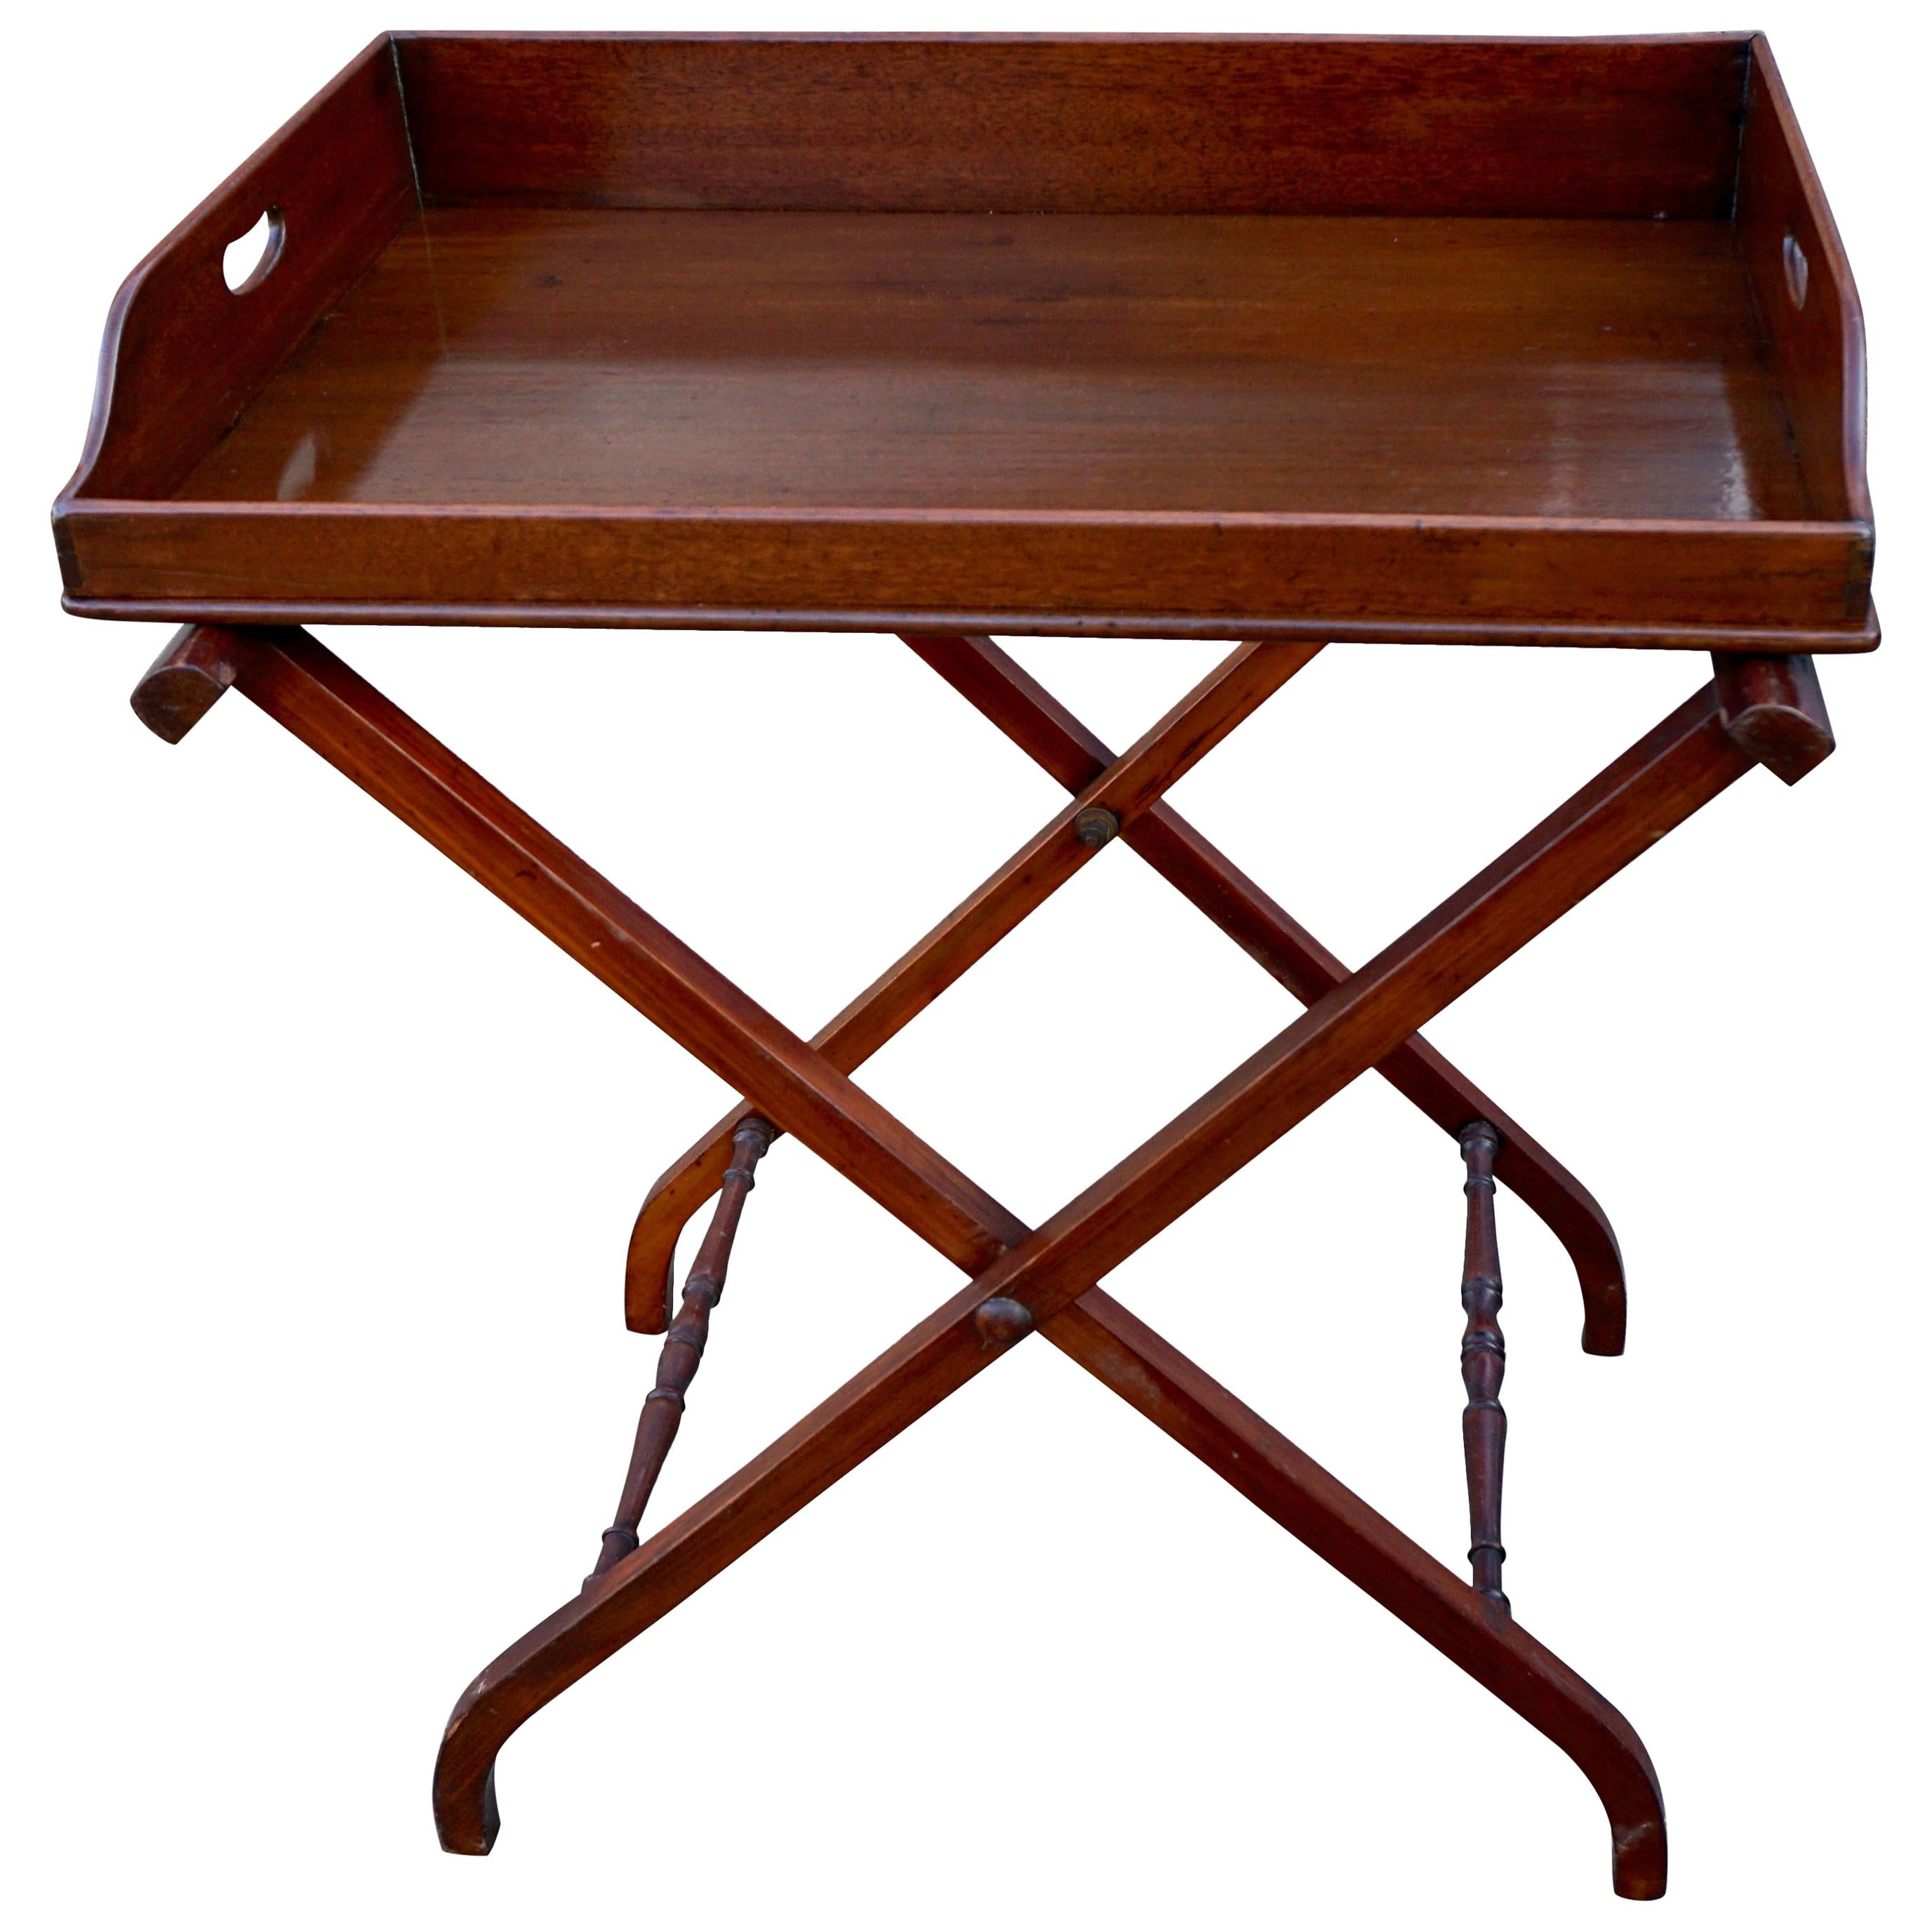 Regency Mahogany Butler's Table on Associated Stand